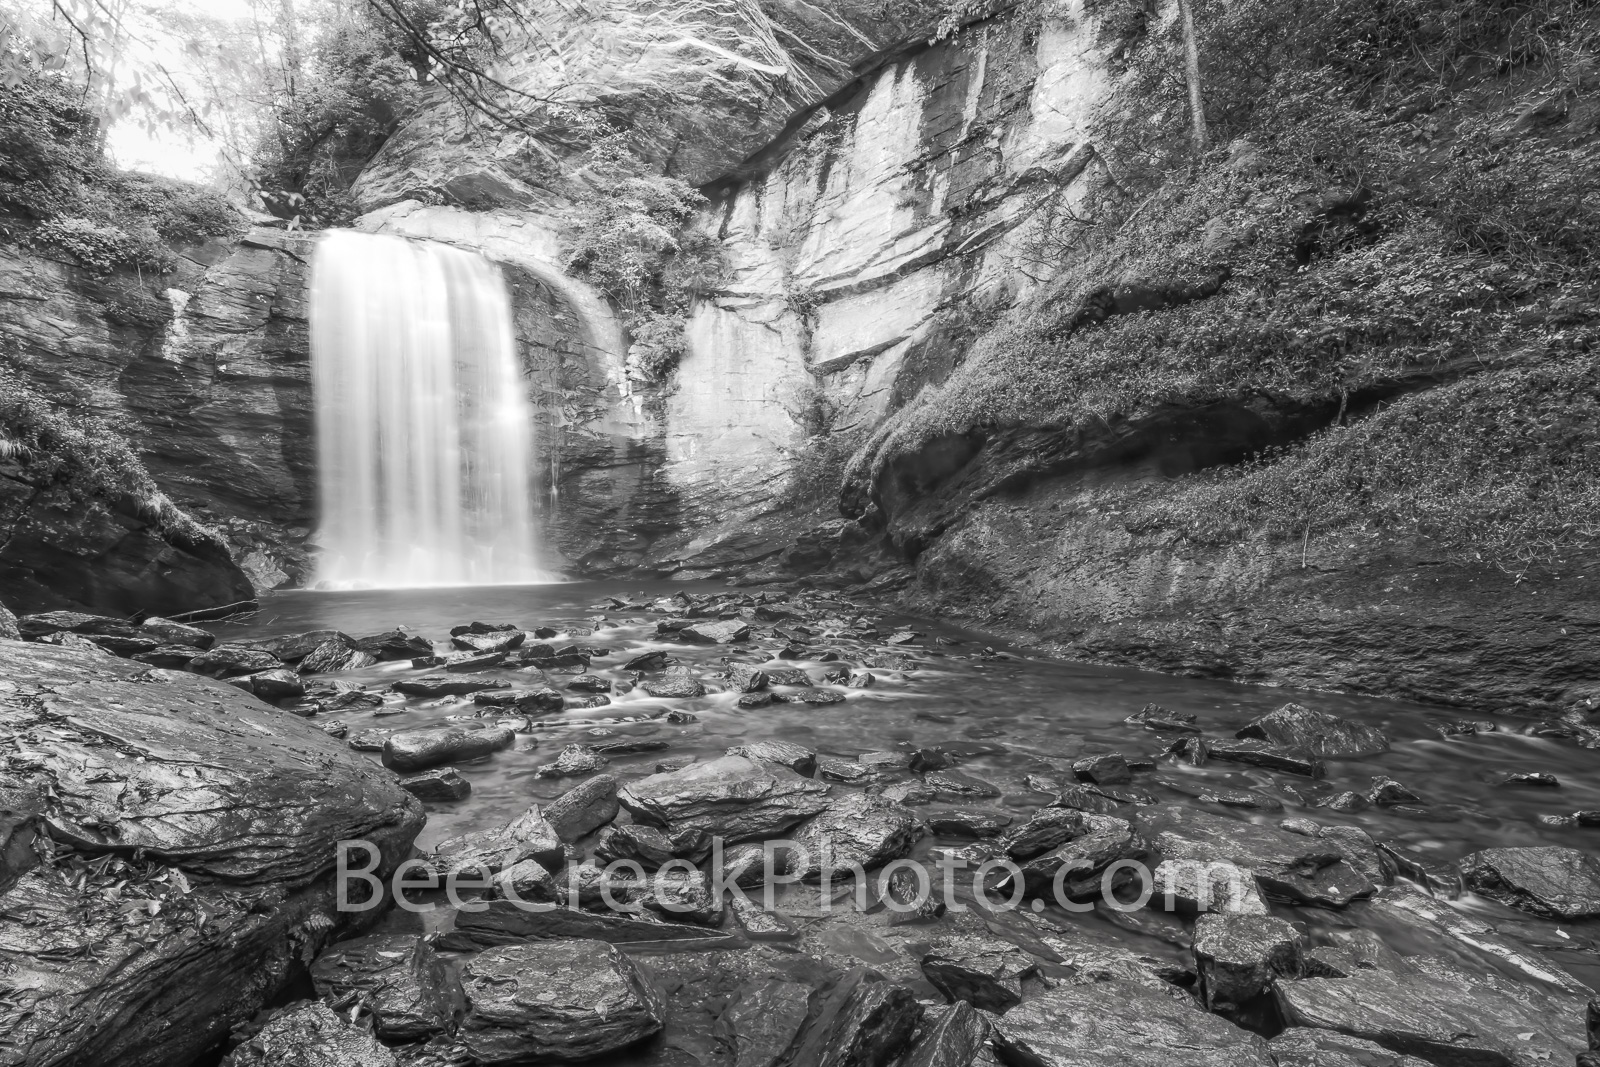 looking glass falls, waterfalls, waterfall, falls, stream, rocks, slate, granite, geology, looking glass rock, b w, black and white, creek, pisgah national forest, smoky national forest, smokies, nort, photo